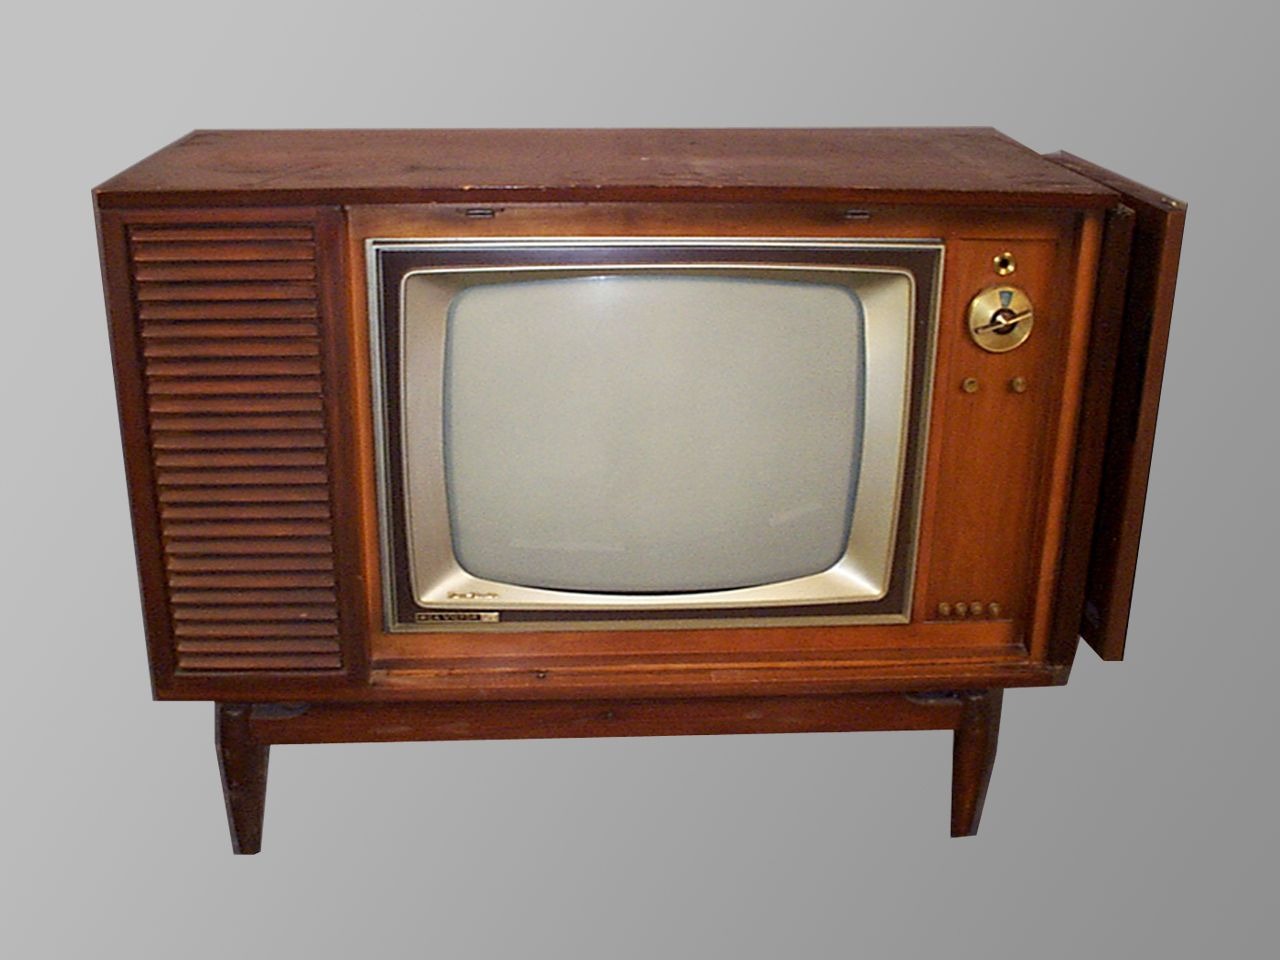 television from 1960 | RCA New Vista Cherry 25″ | Retro Televisions ...